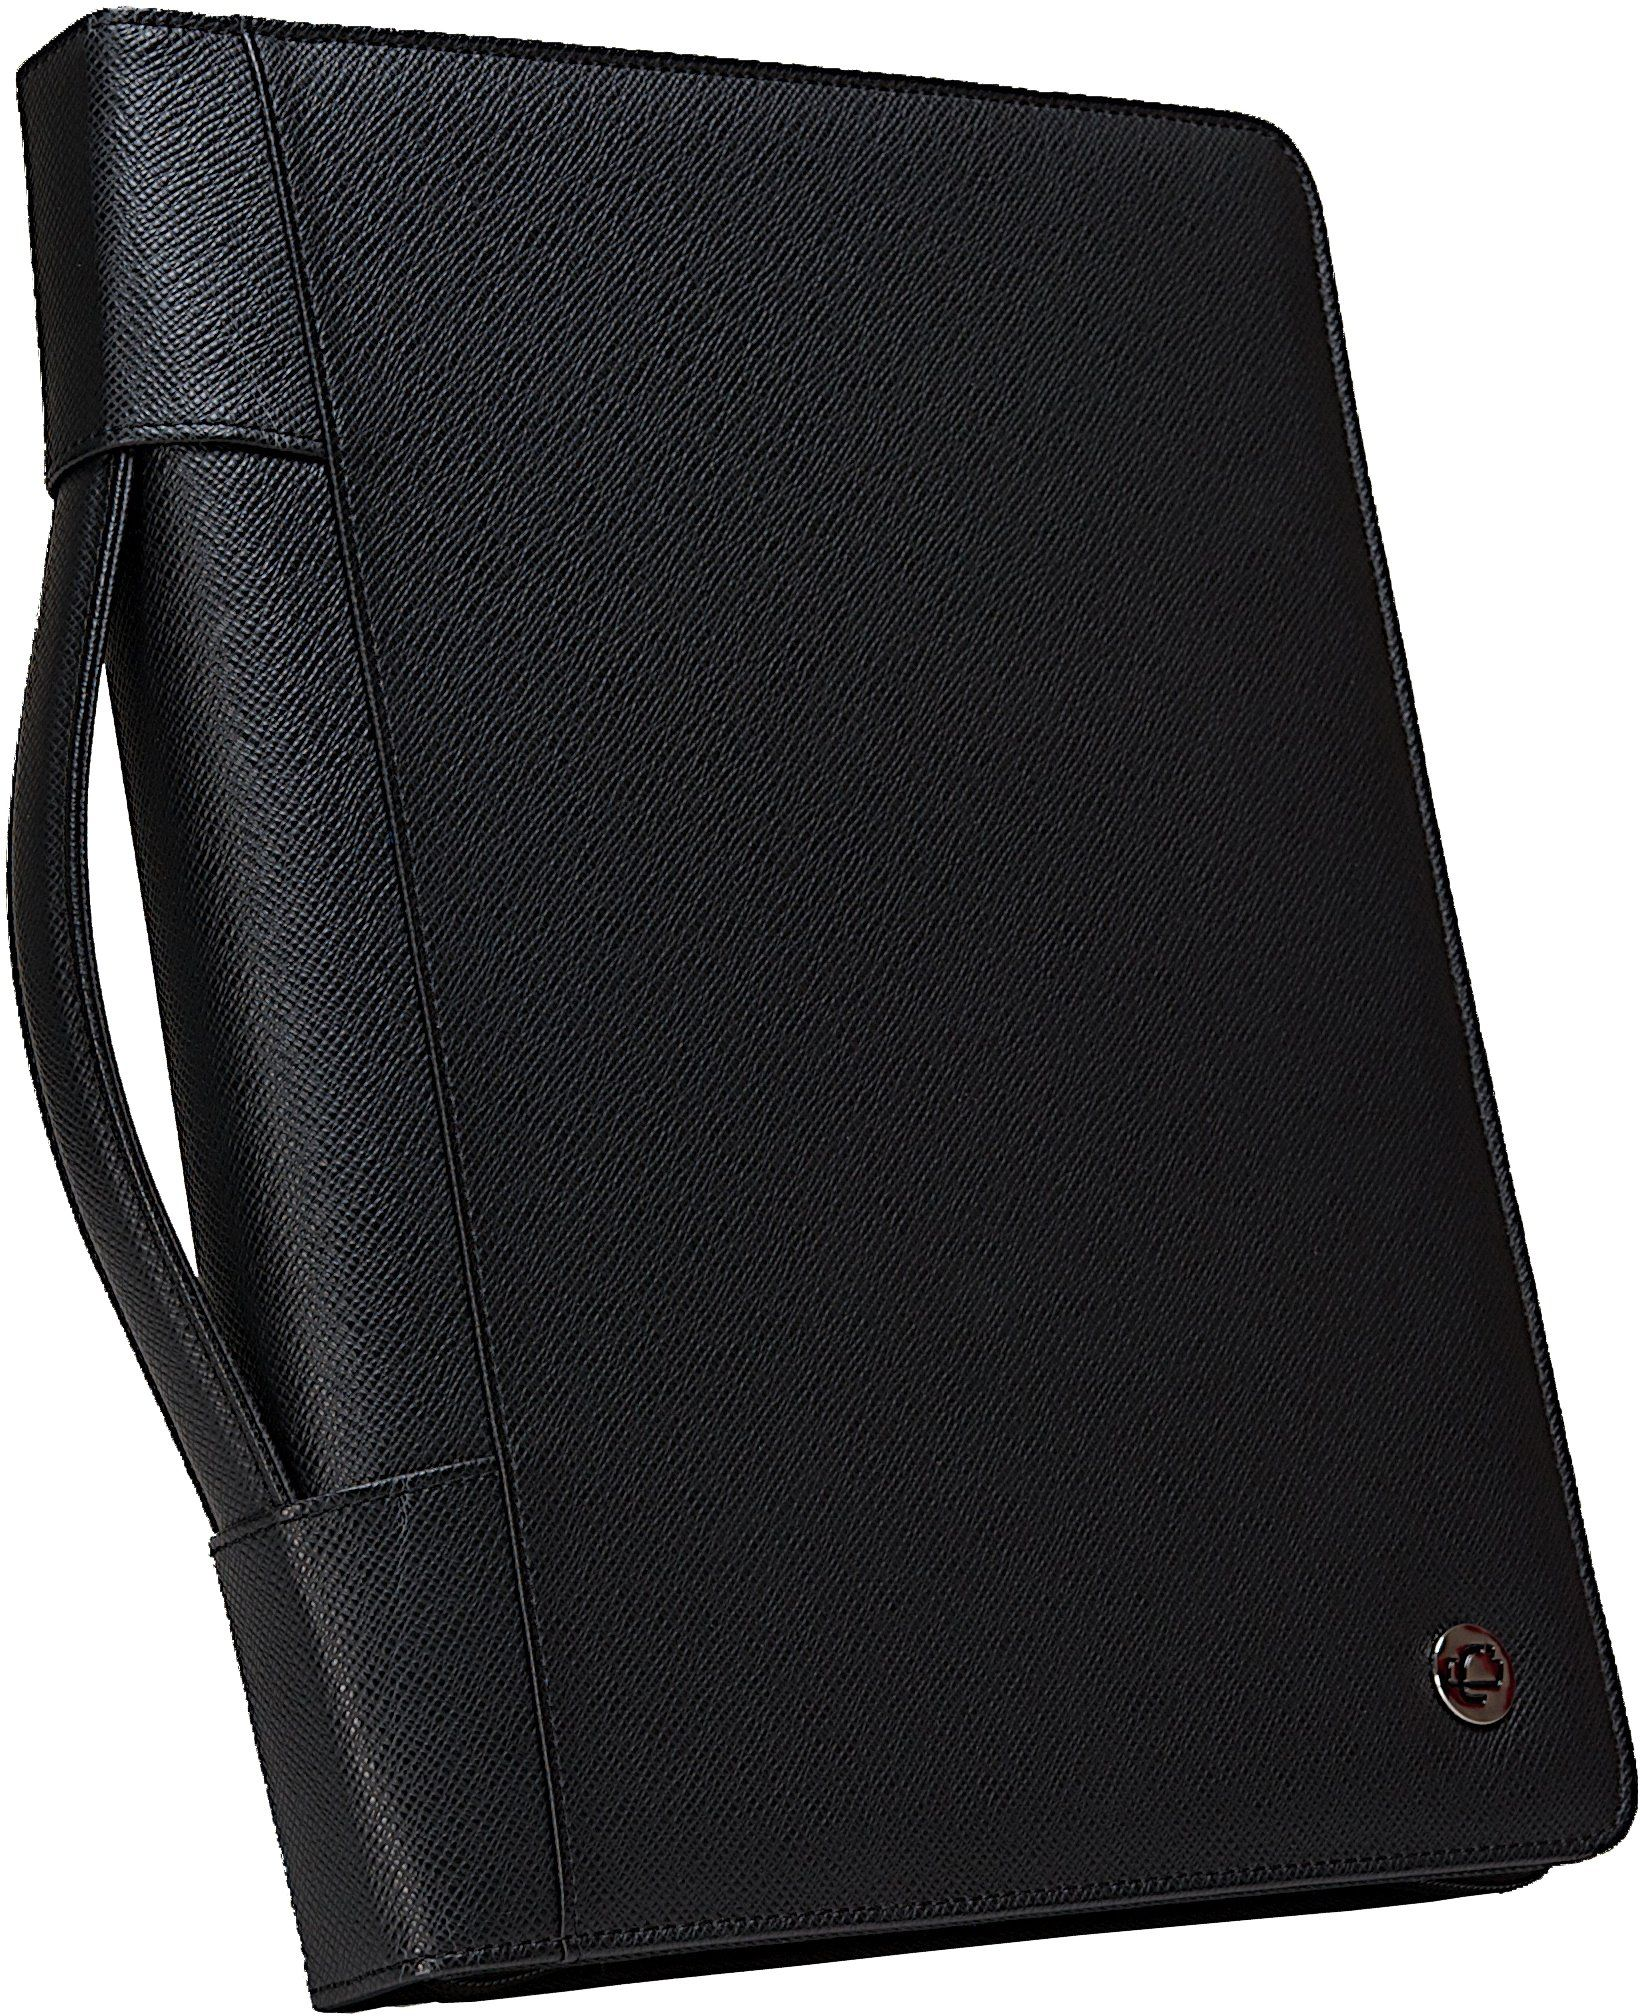 Case-it Executive Zippered Padfolio With Removable 3-Ring